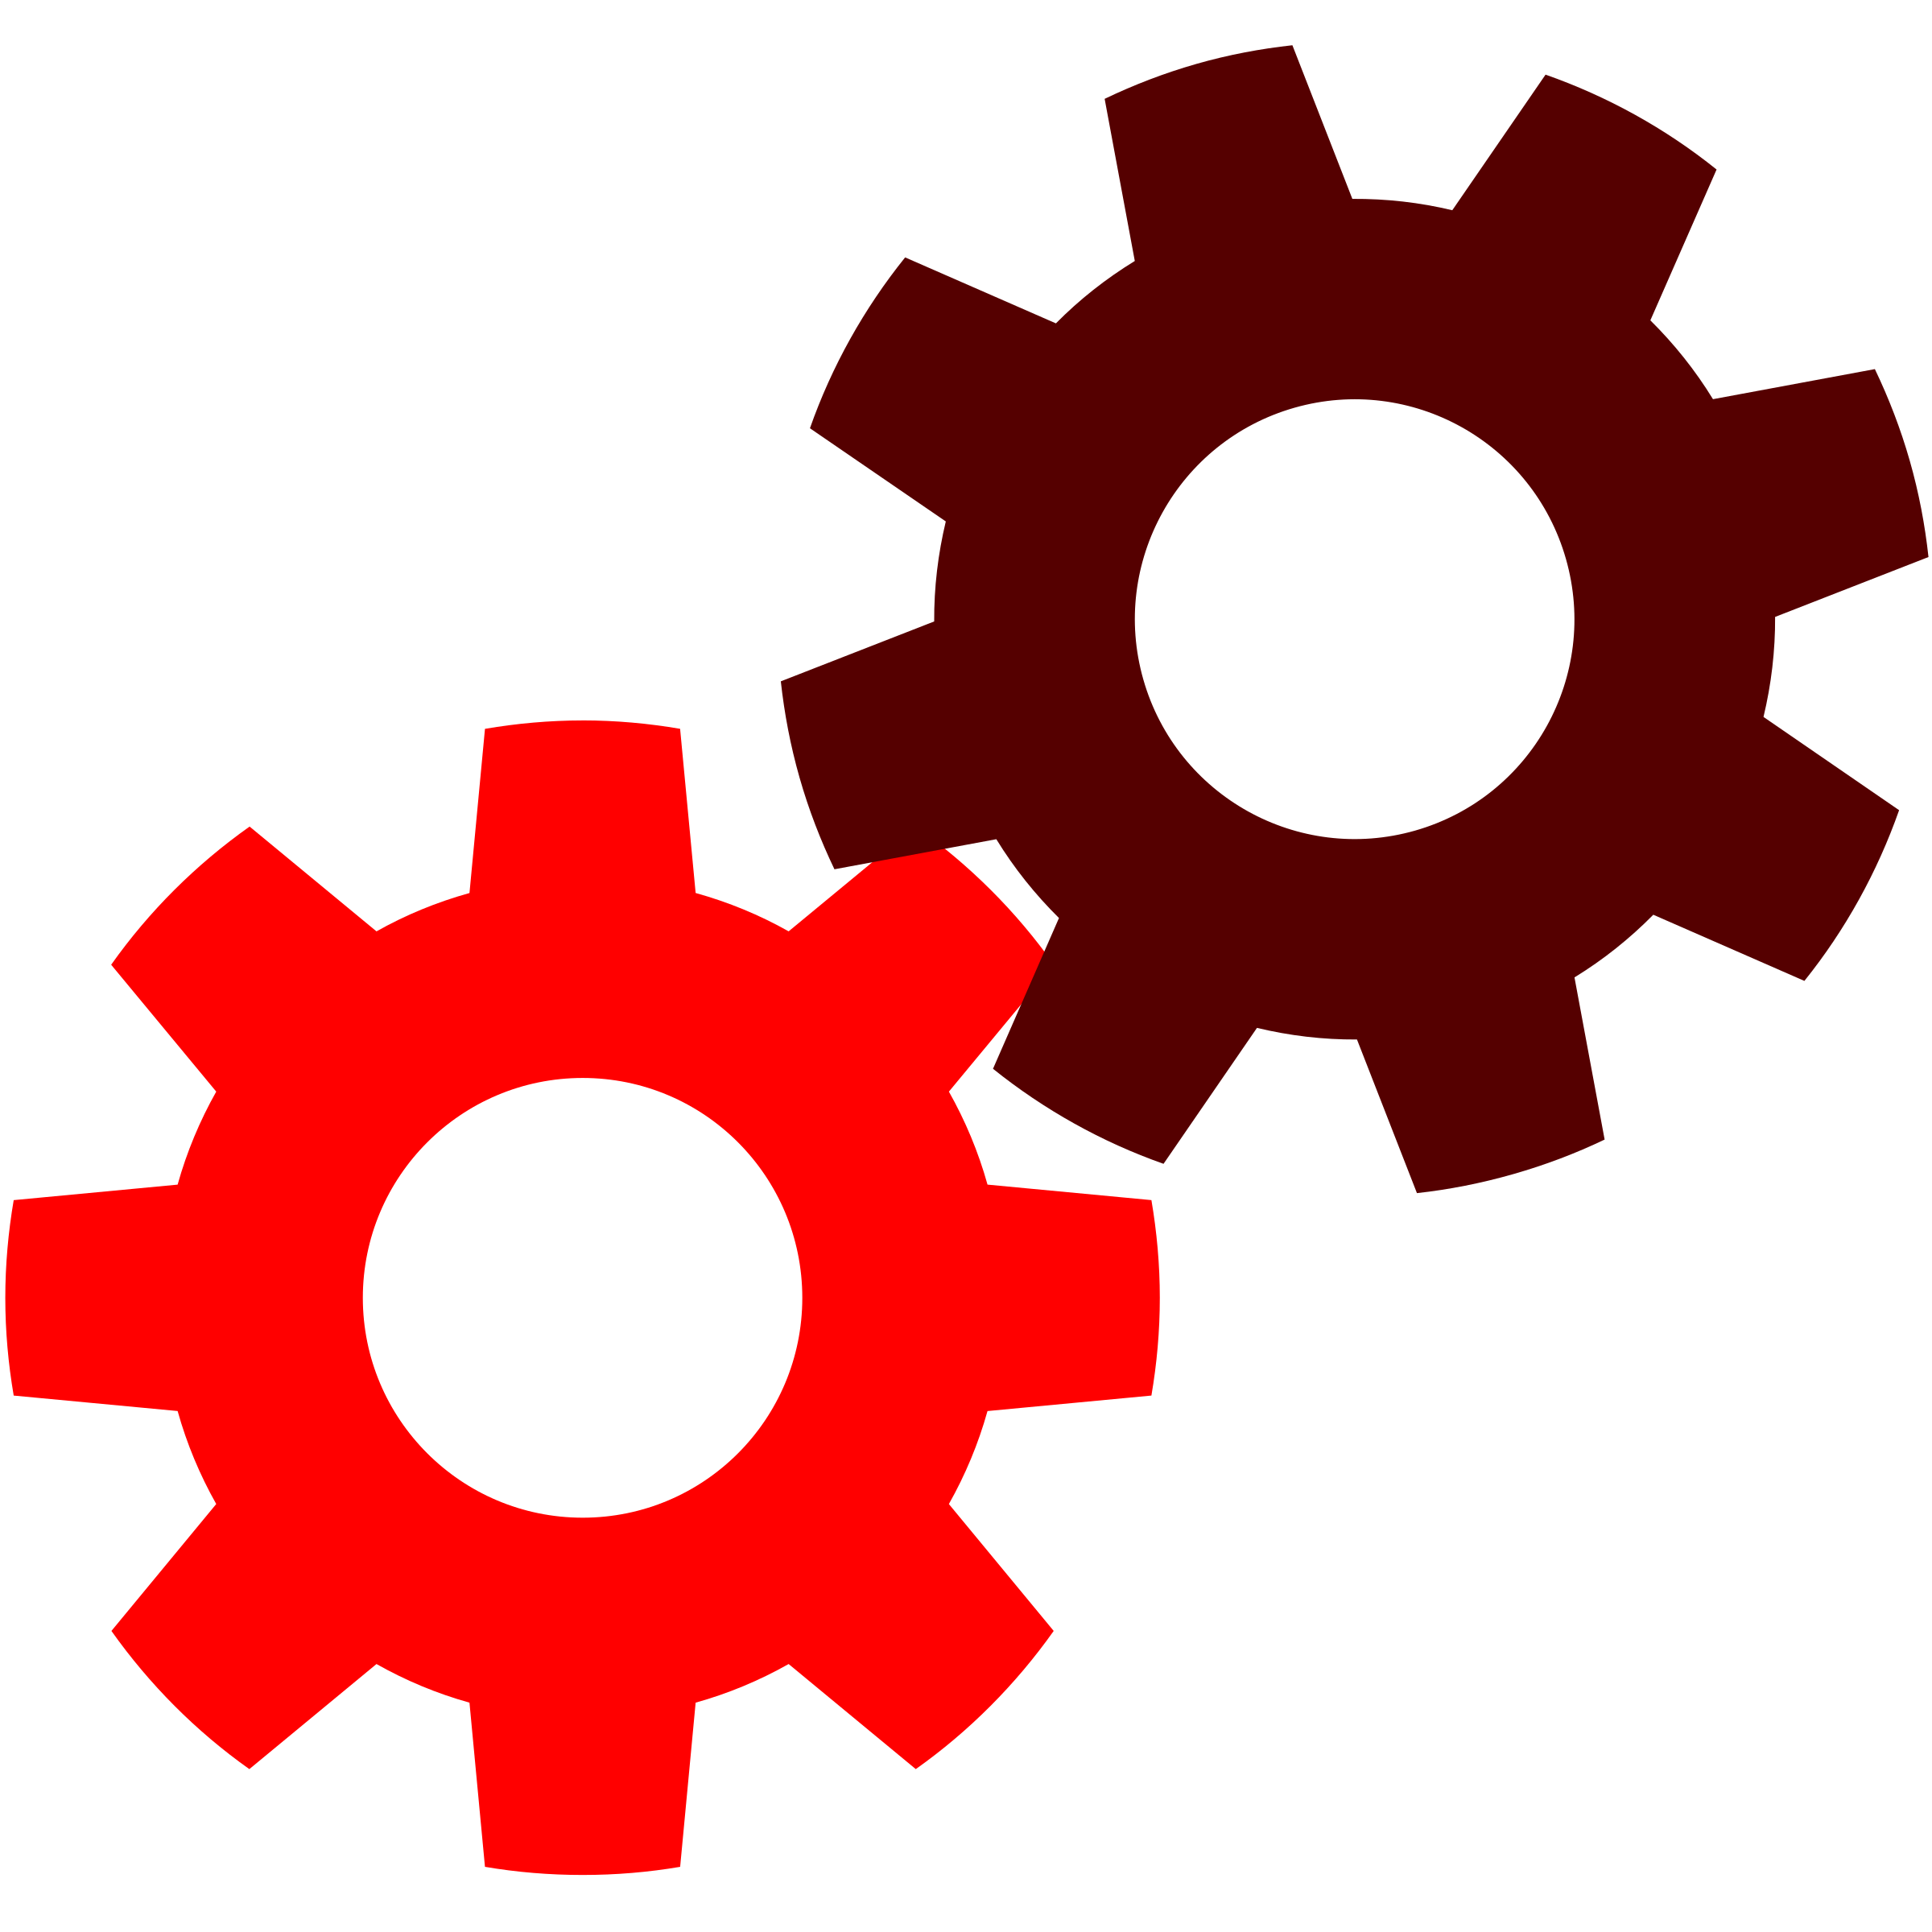 gears clipart red